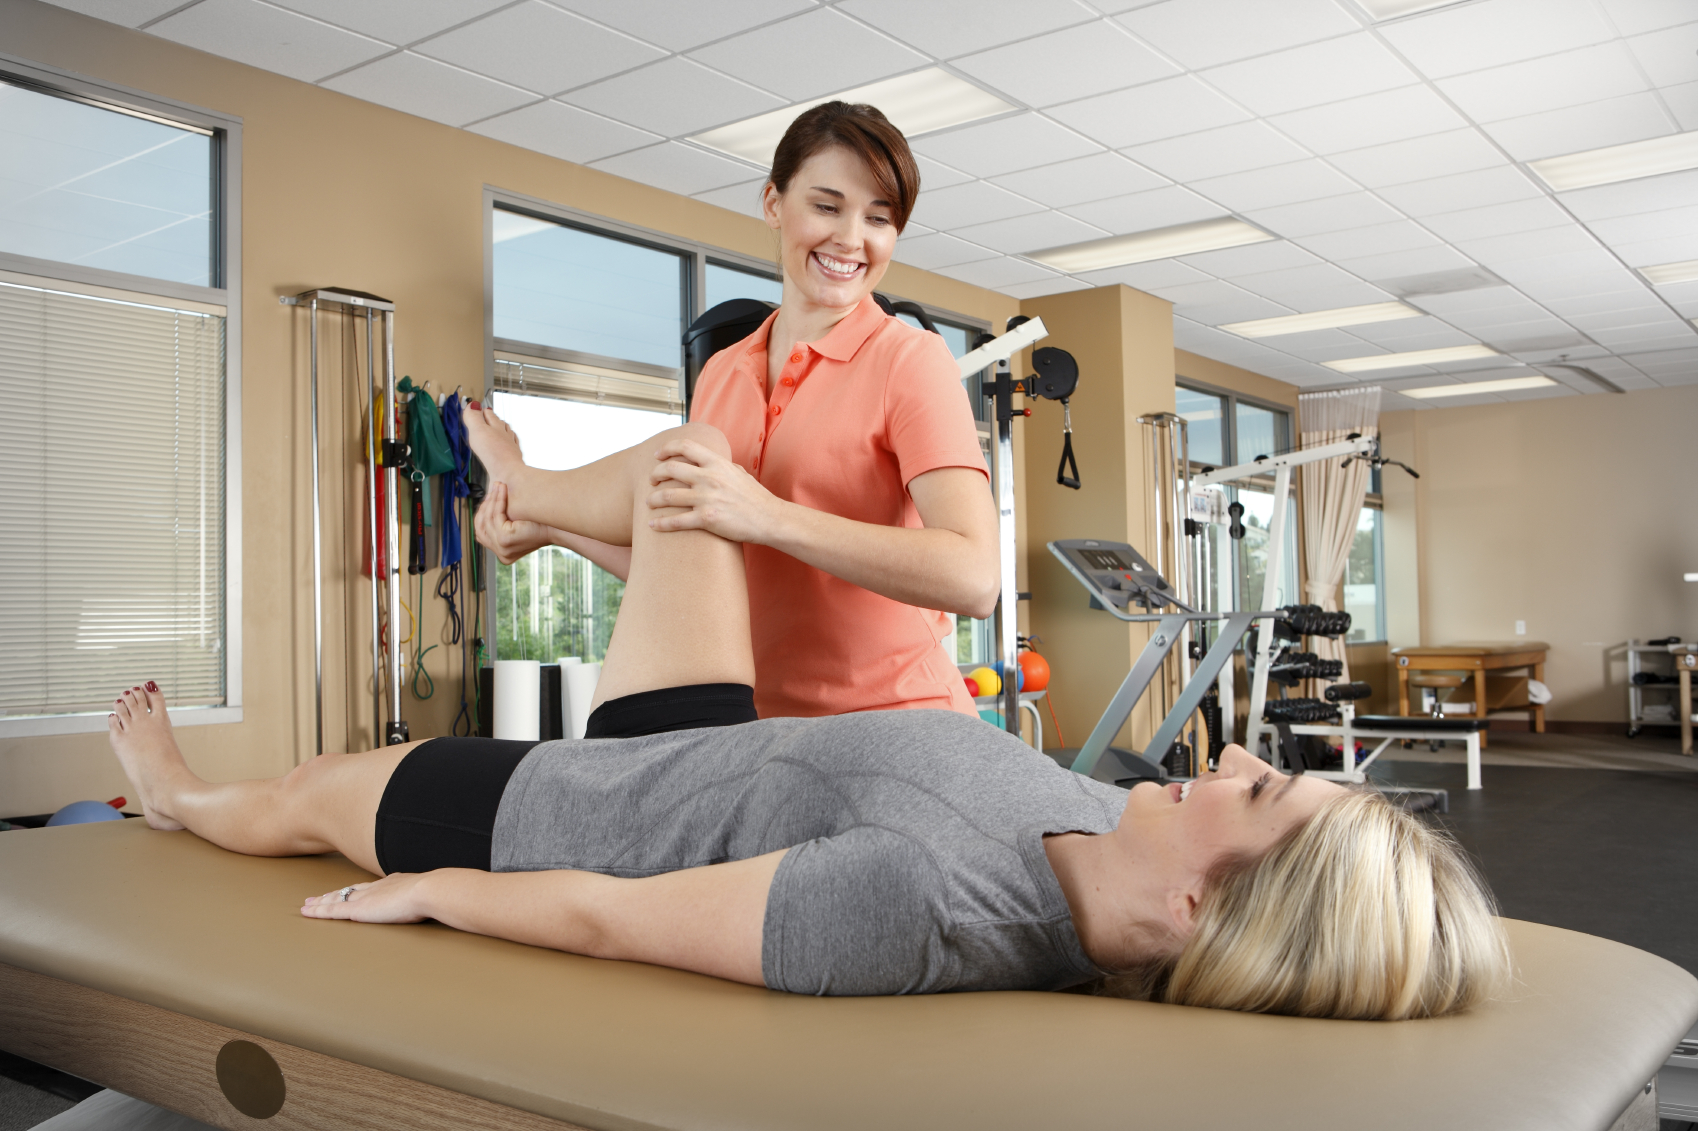 physical therapy Our specialized rehab and physical therapists can help you recover from an injury, regain strength after surgery or cope with a chronic condition.